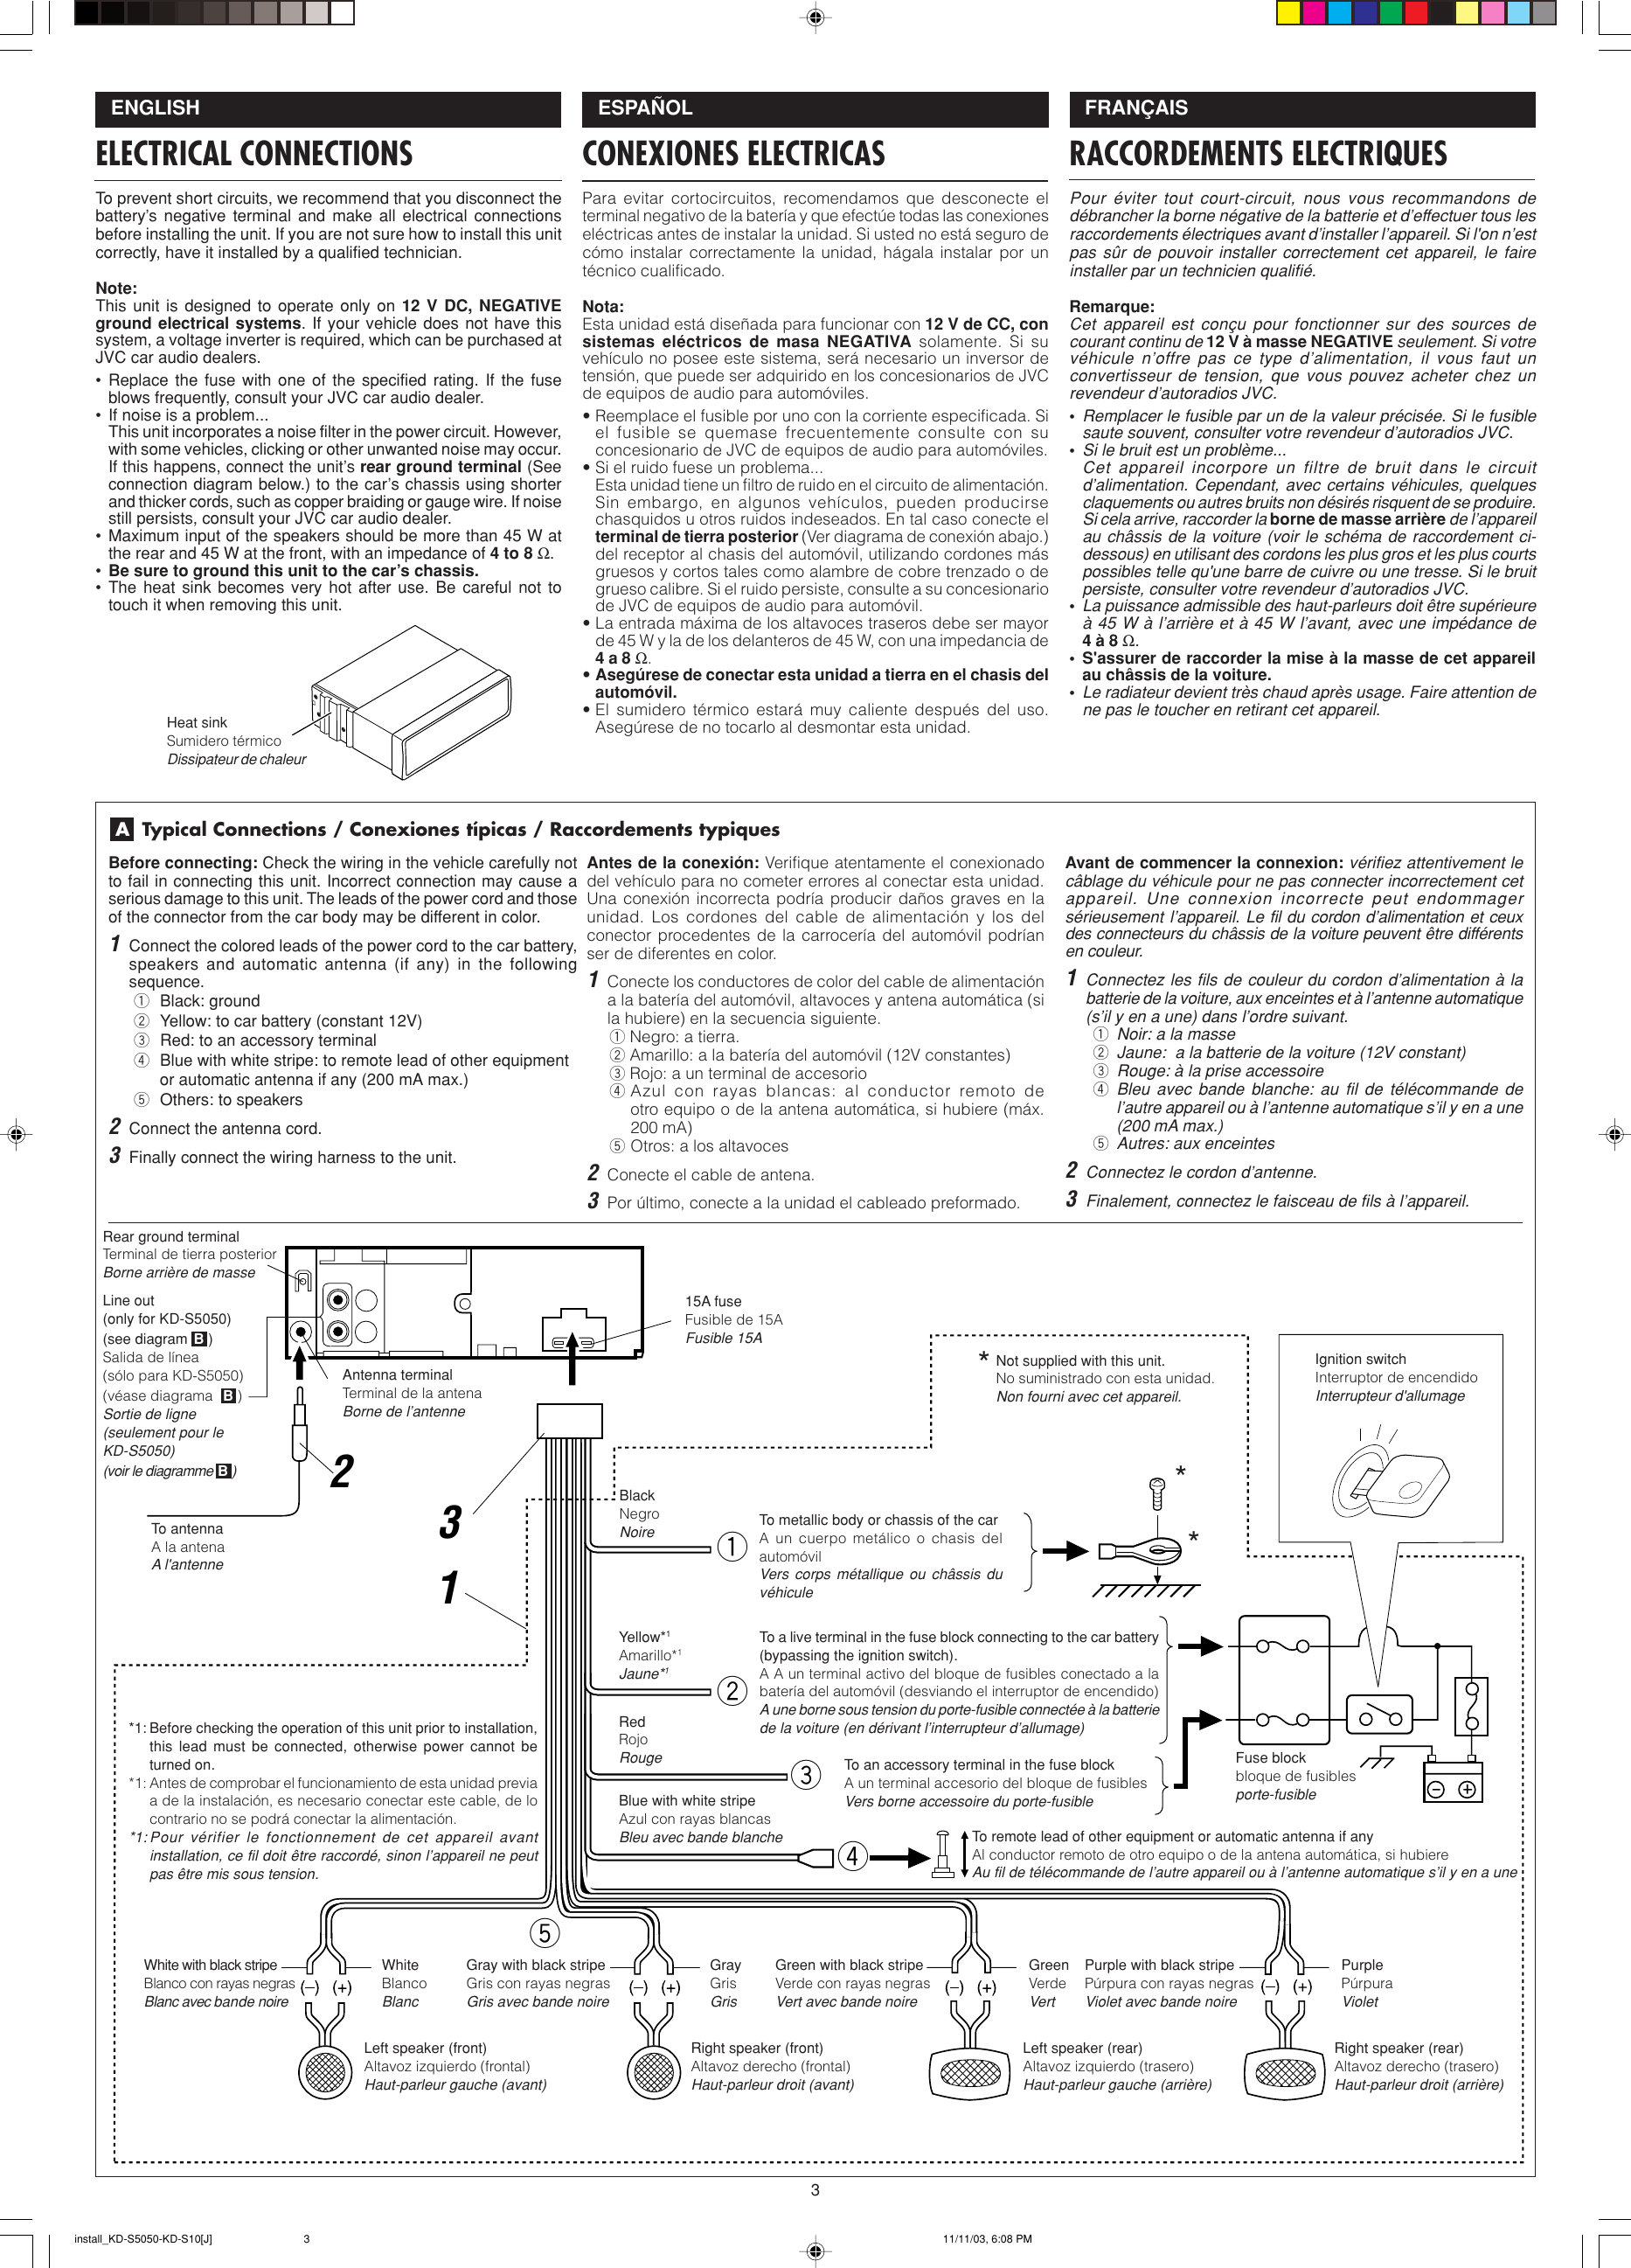 [DIAGRAM_38YU]  Jvc Kd S5050 Installation Manual | Jvc Kd S5050 Wiring Diagram |  | UserManual.wiki